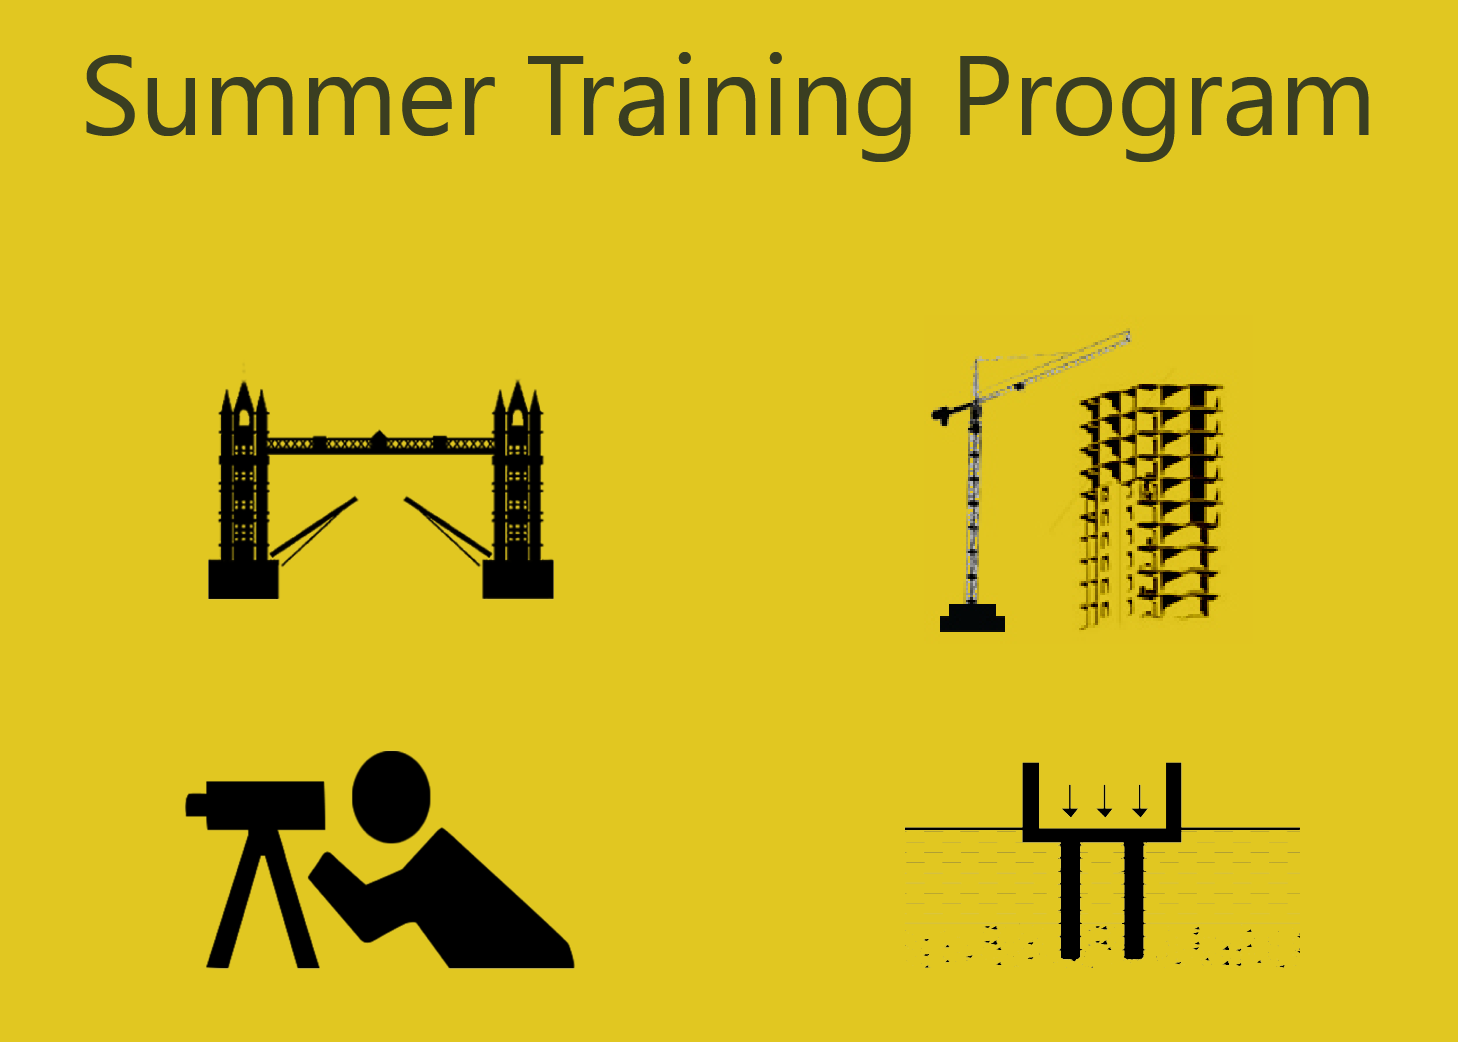 Summer Training Program